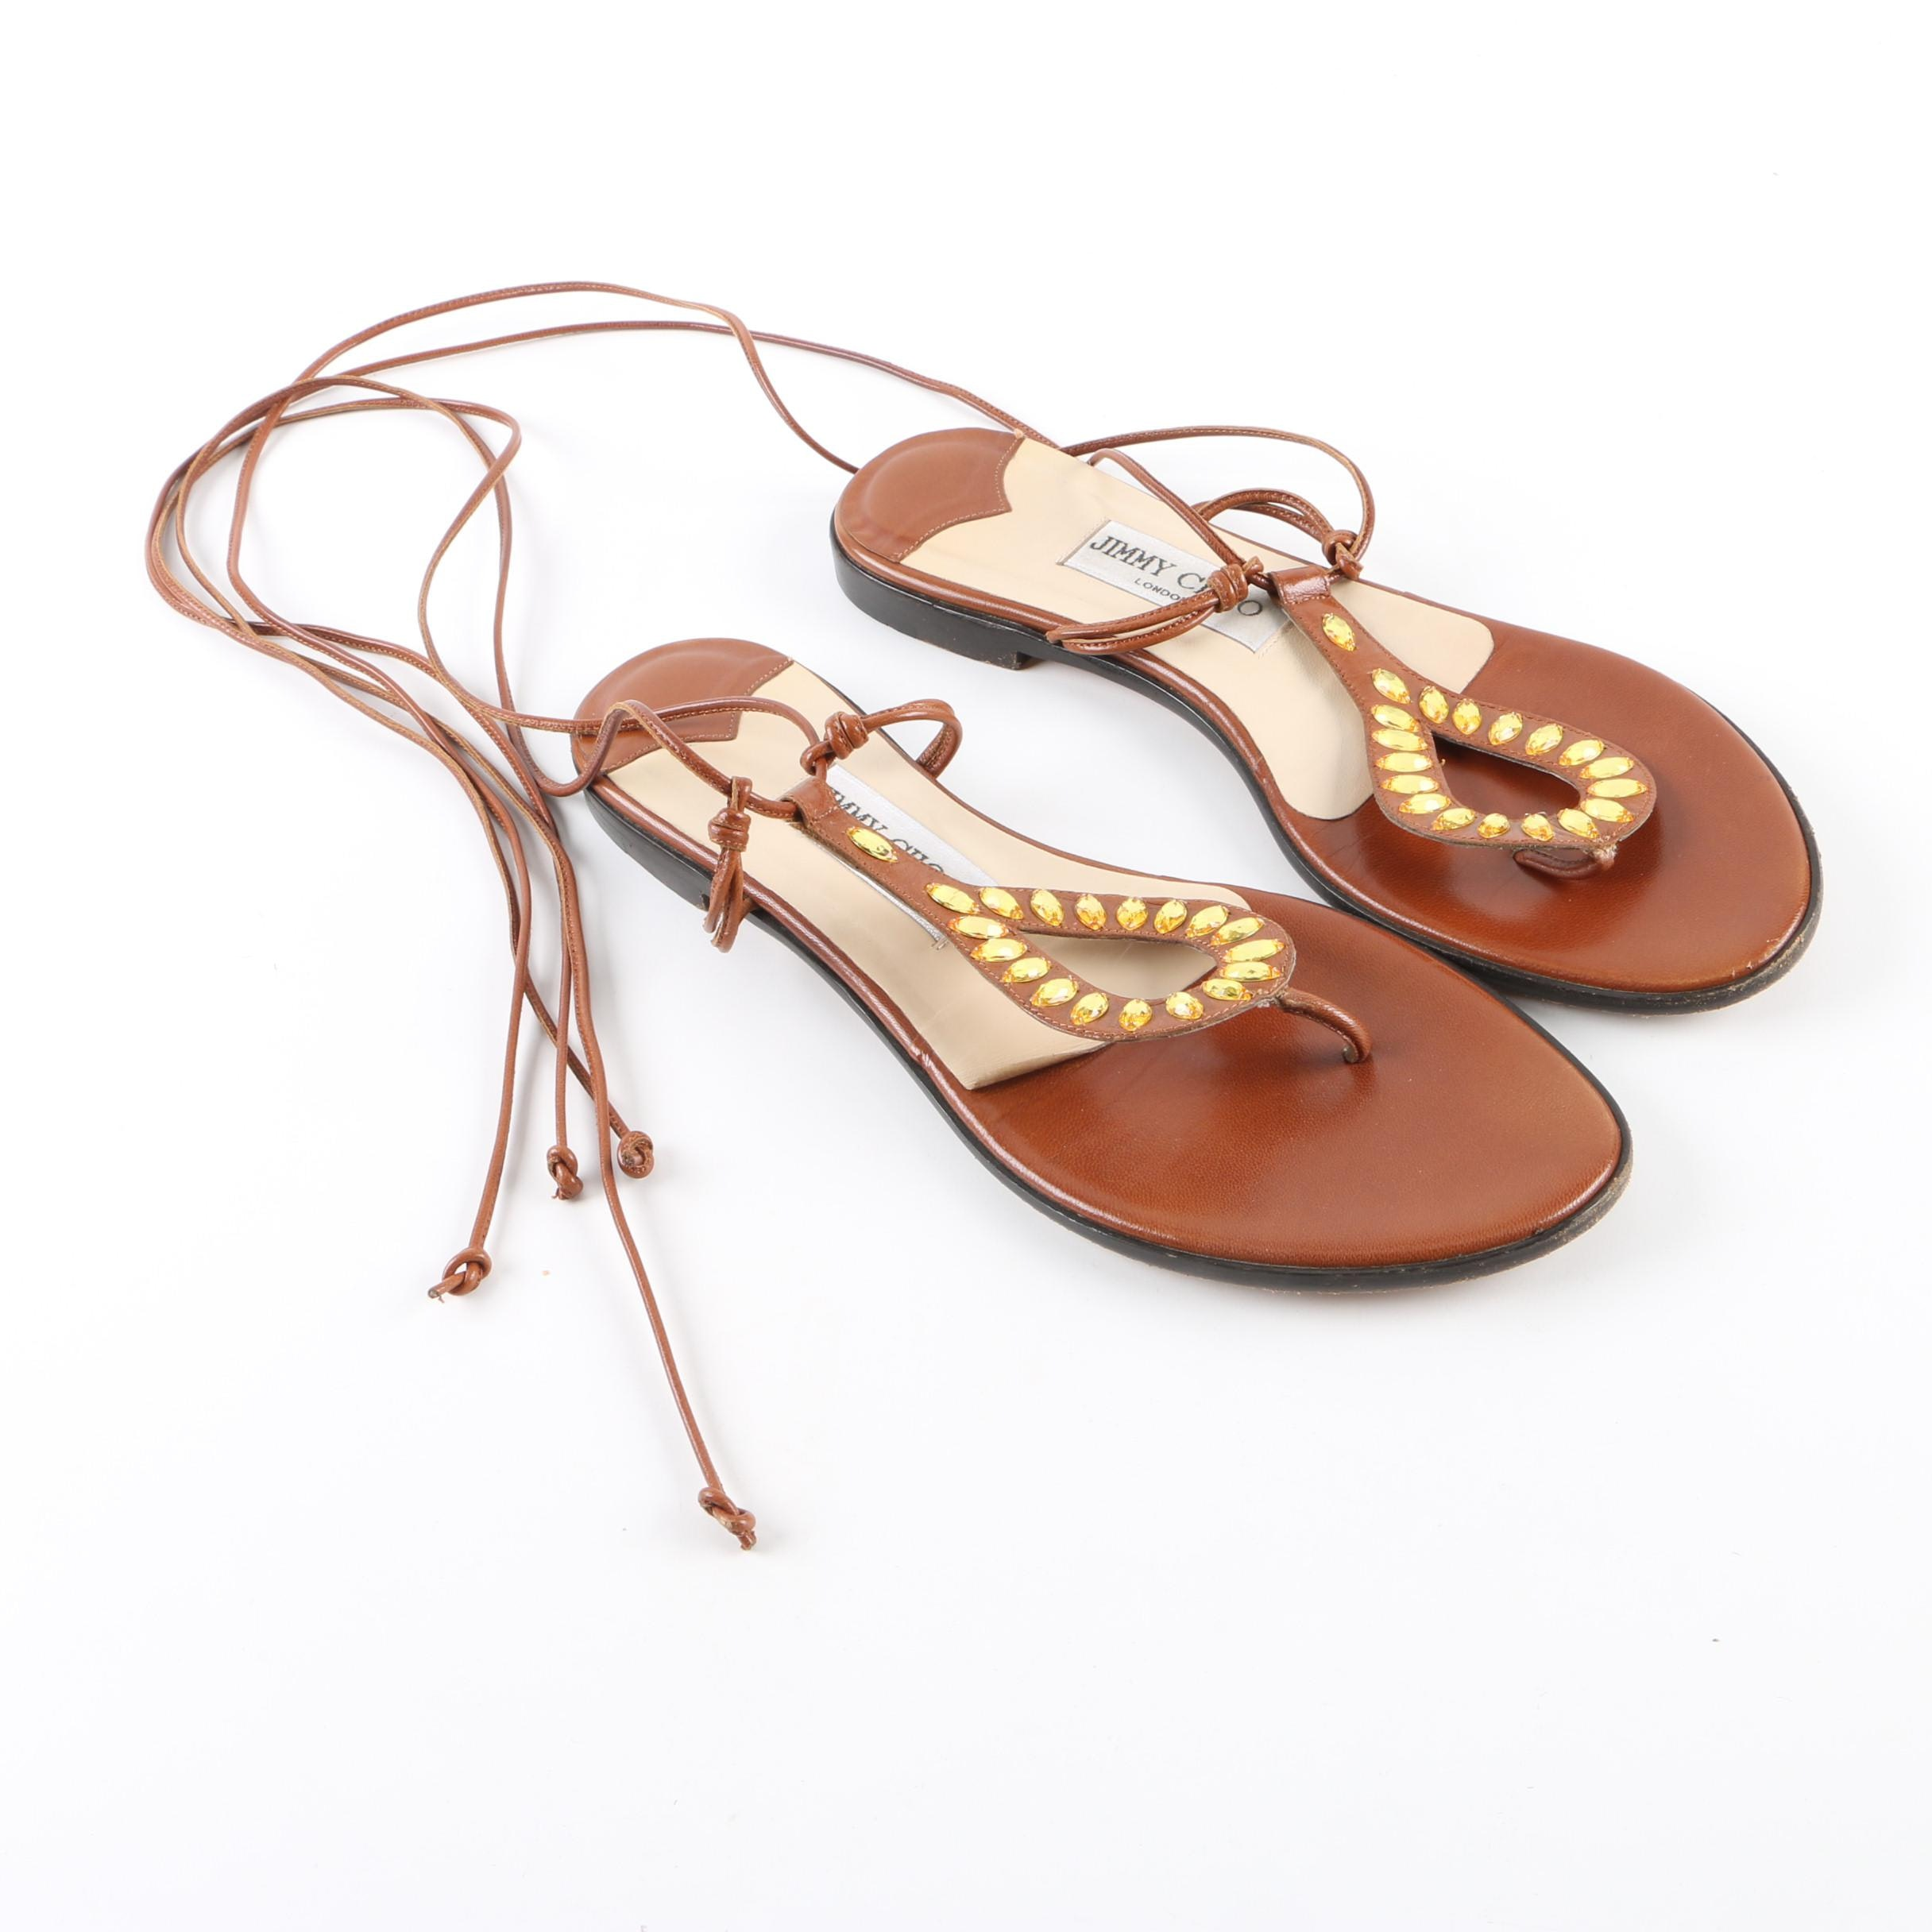 Women's Jimmy Choo London Sandals Brown Leather Sandals with Rhinestone Accents